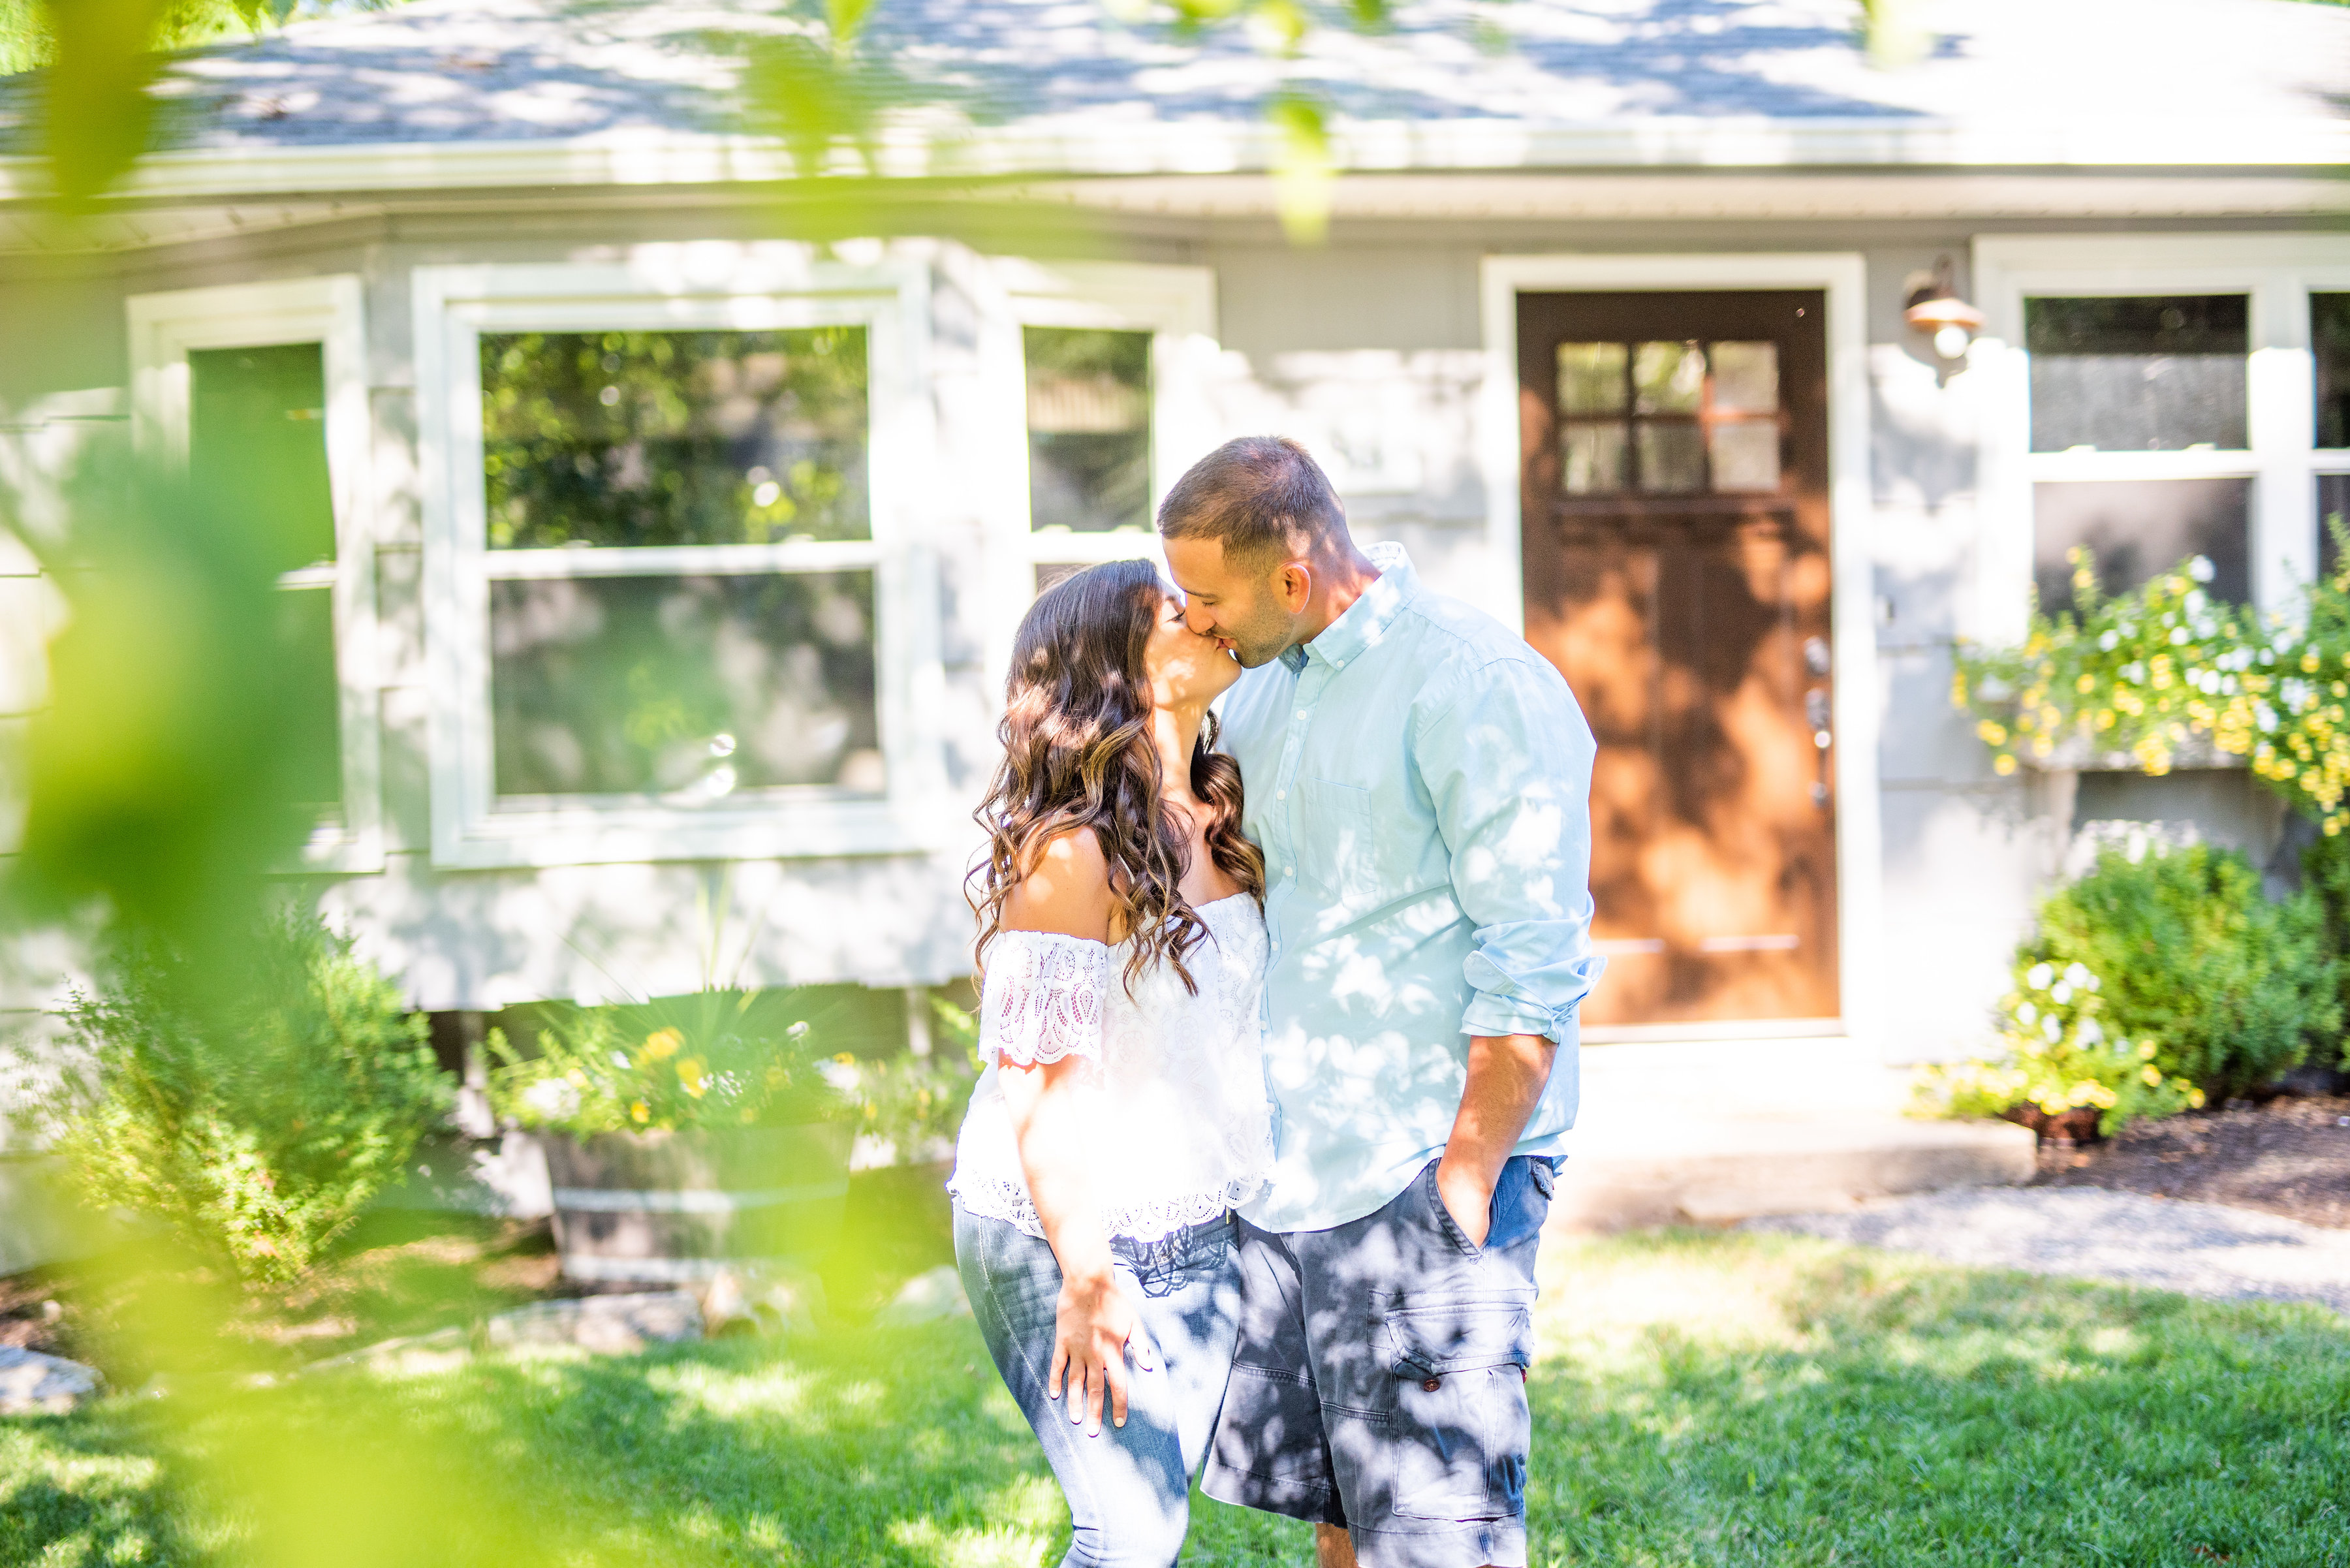 Calverton Engagement Shoot | Engagement Shoot at Home | Rustic Farrm Kitchen Engagement Shoot | North Forrk Wedding Photographer17